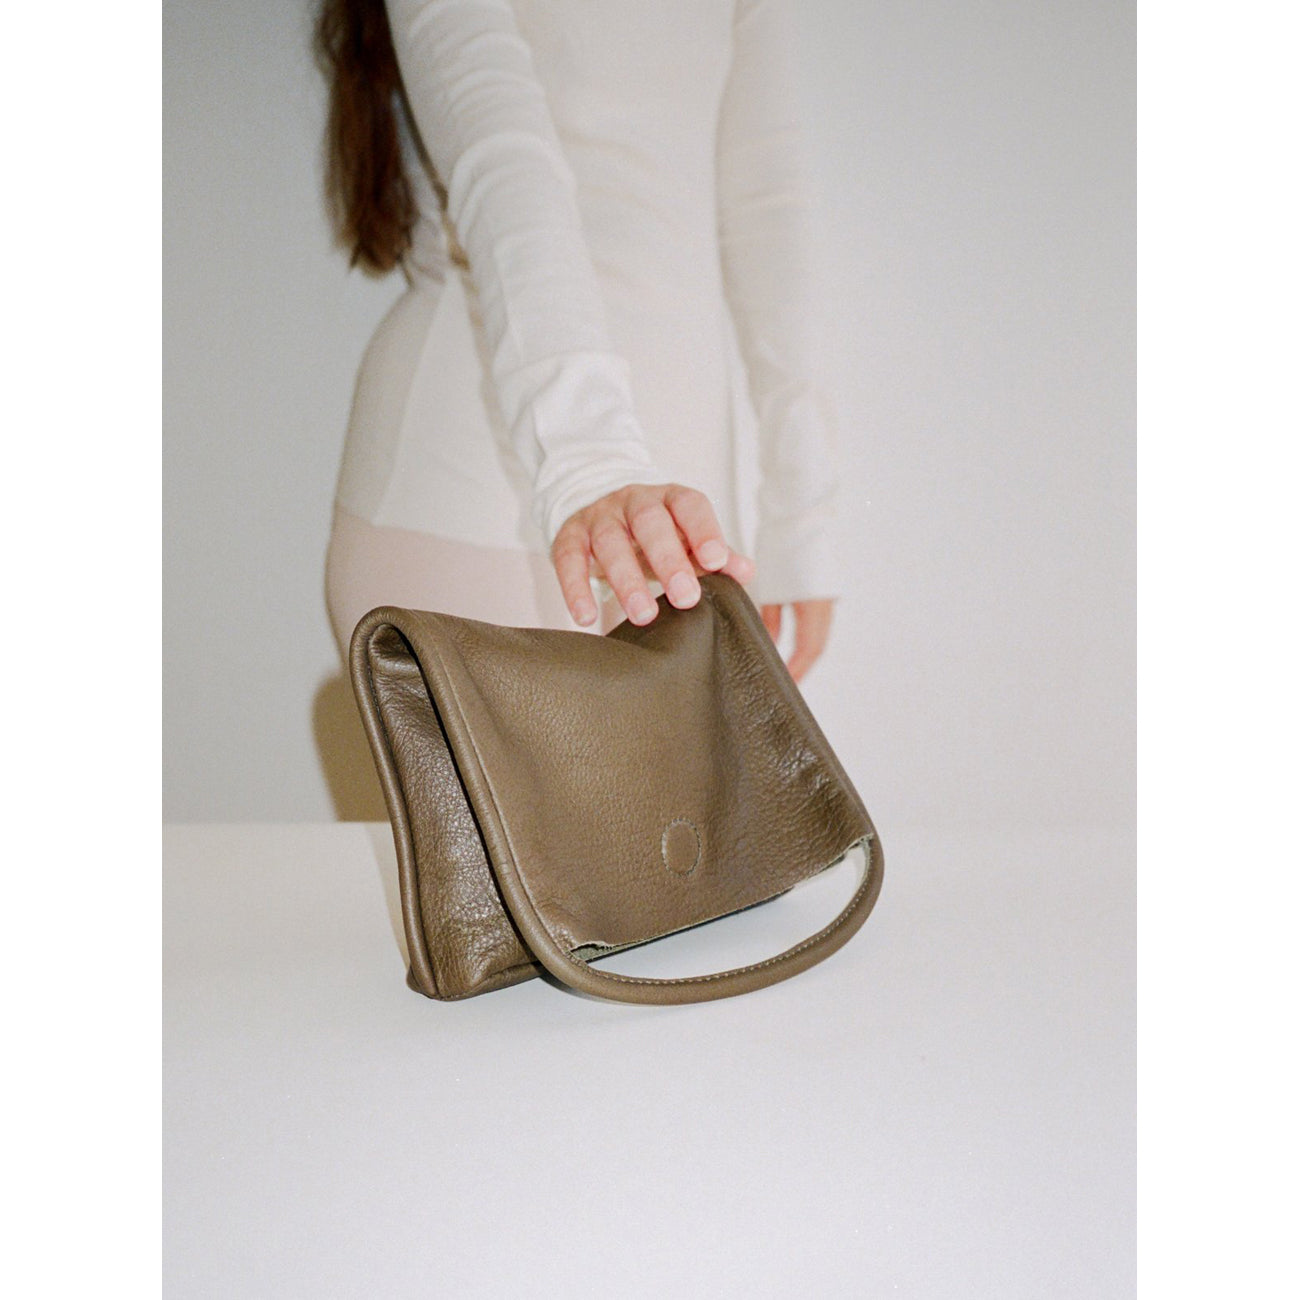 Are Studio Mano Clutch in Olive